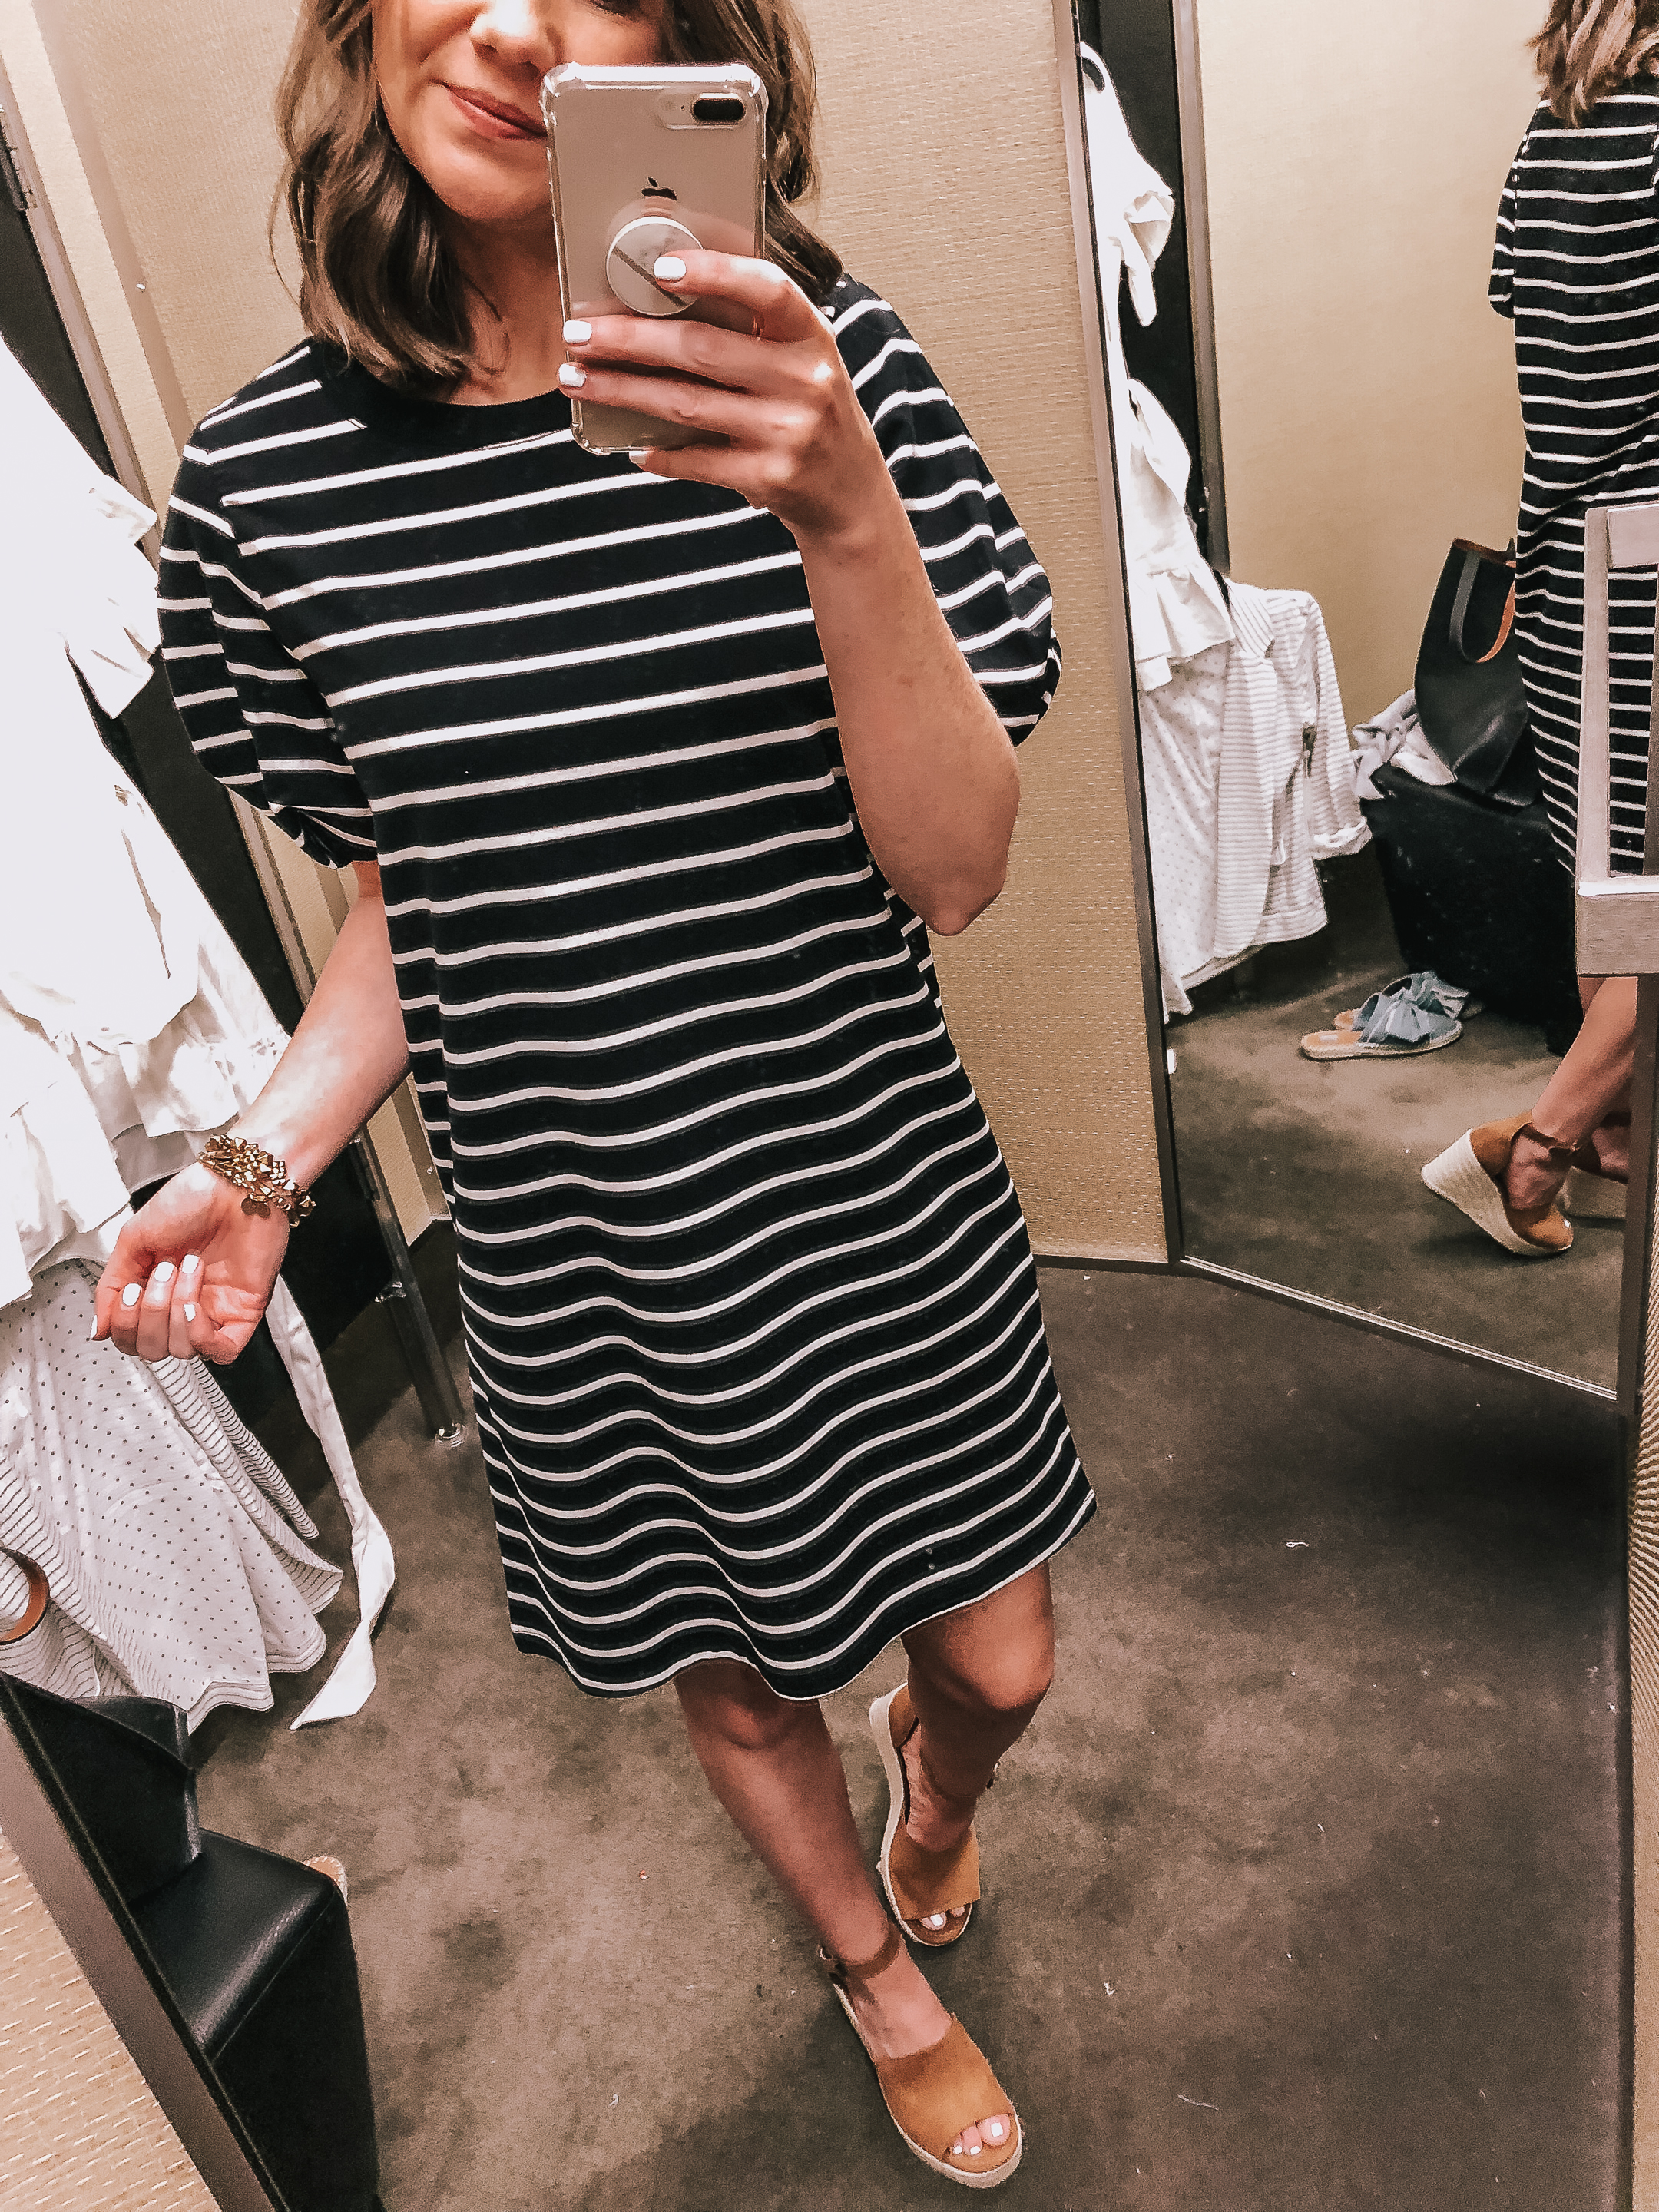 simon malls, woodfield, mother's day gift ideas, Nordstrom striped puff sleeve t-shirt dress